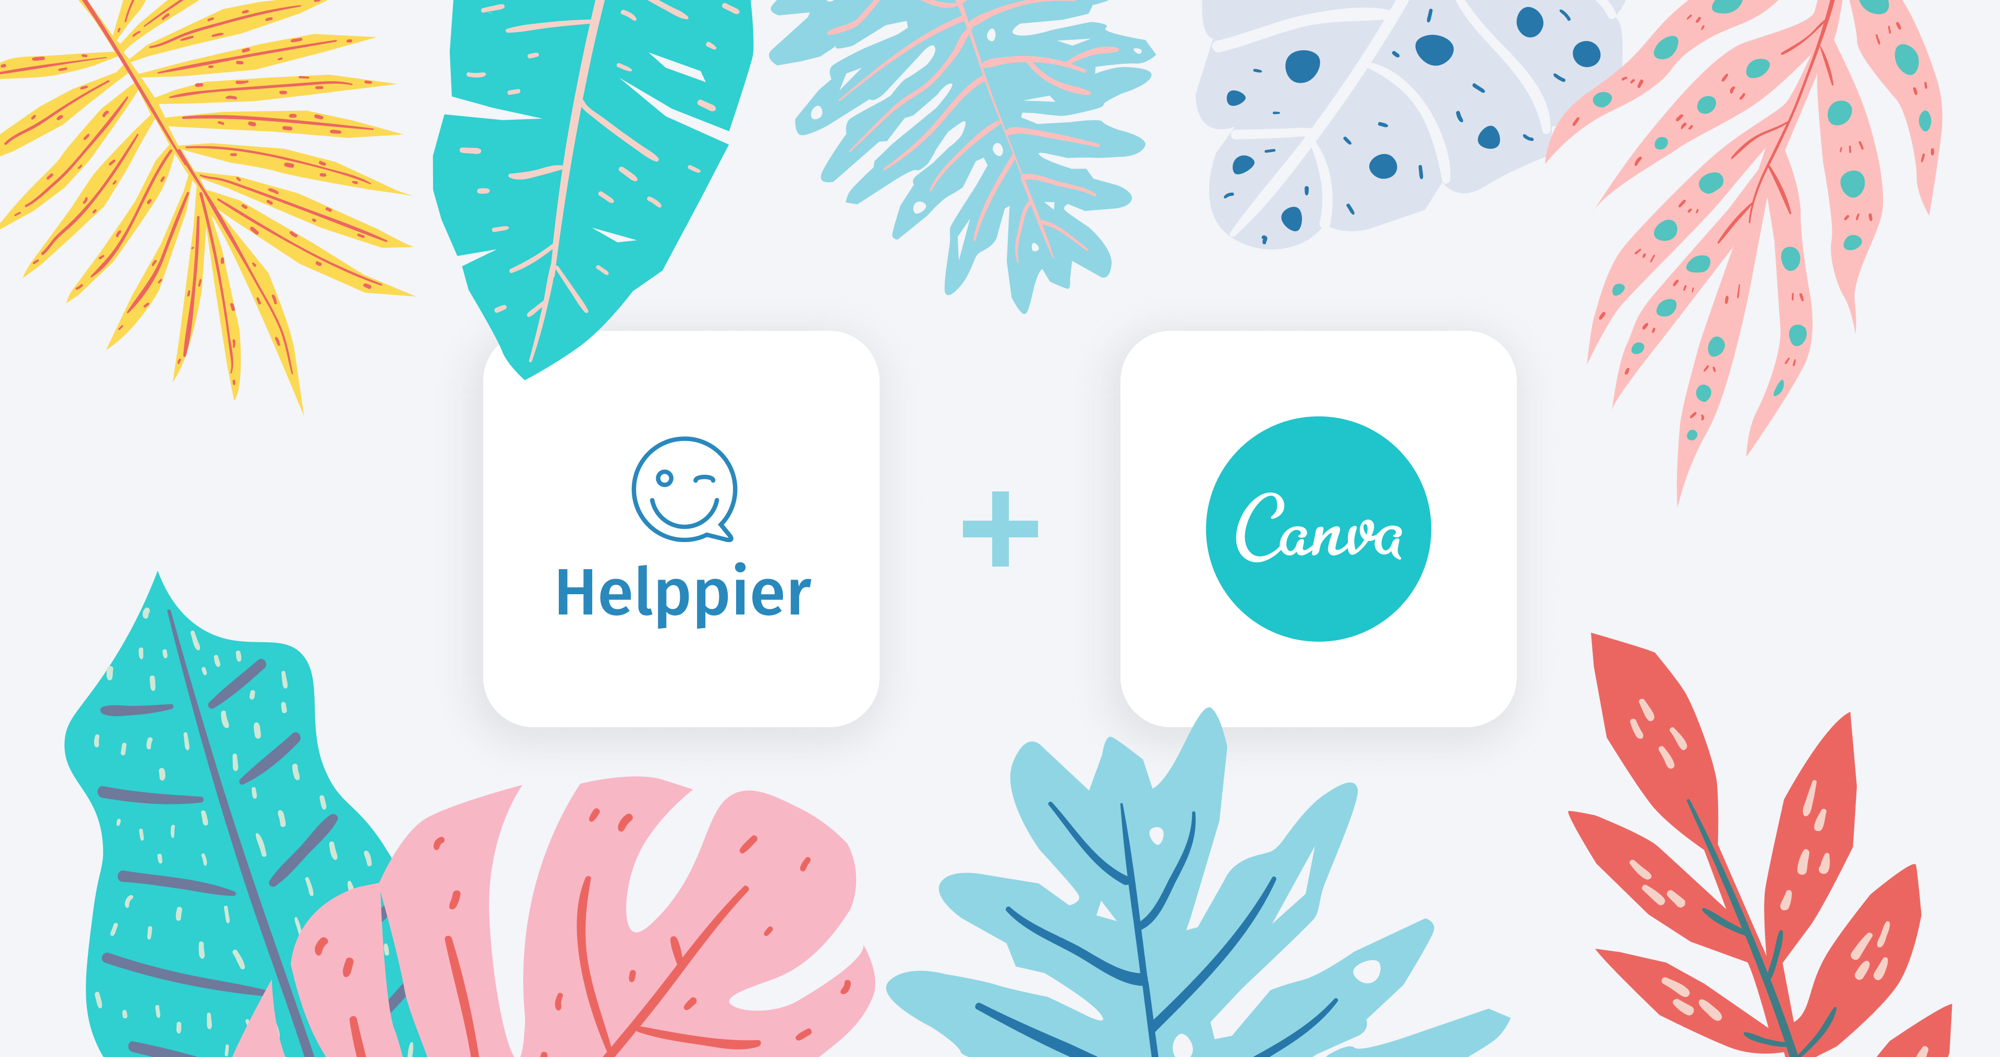 Helppier is the first digital adoption platform to integrate with Canva design tool